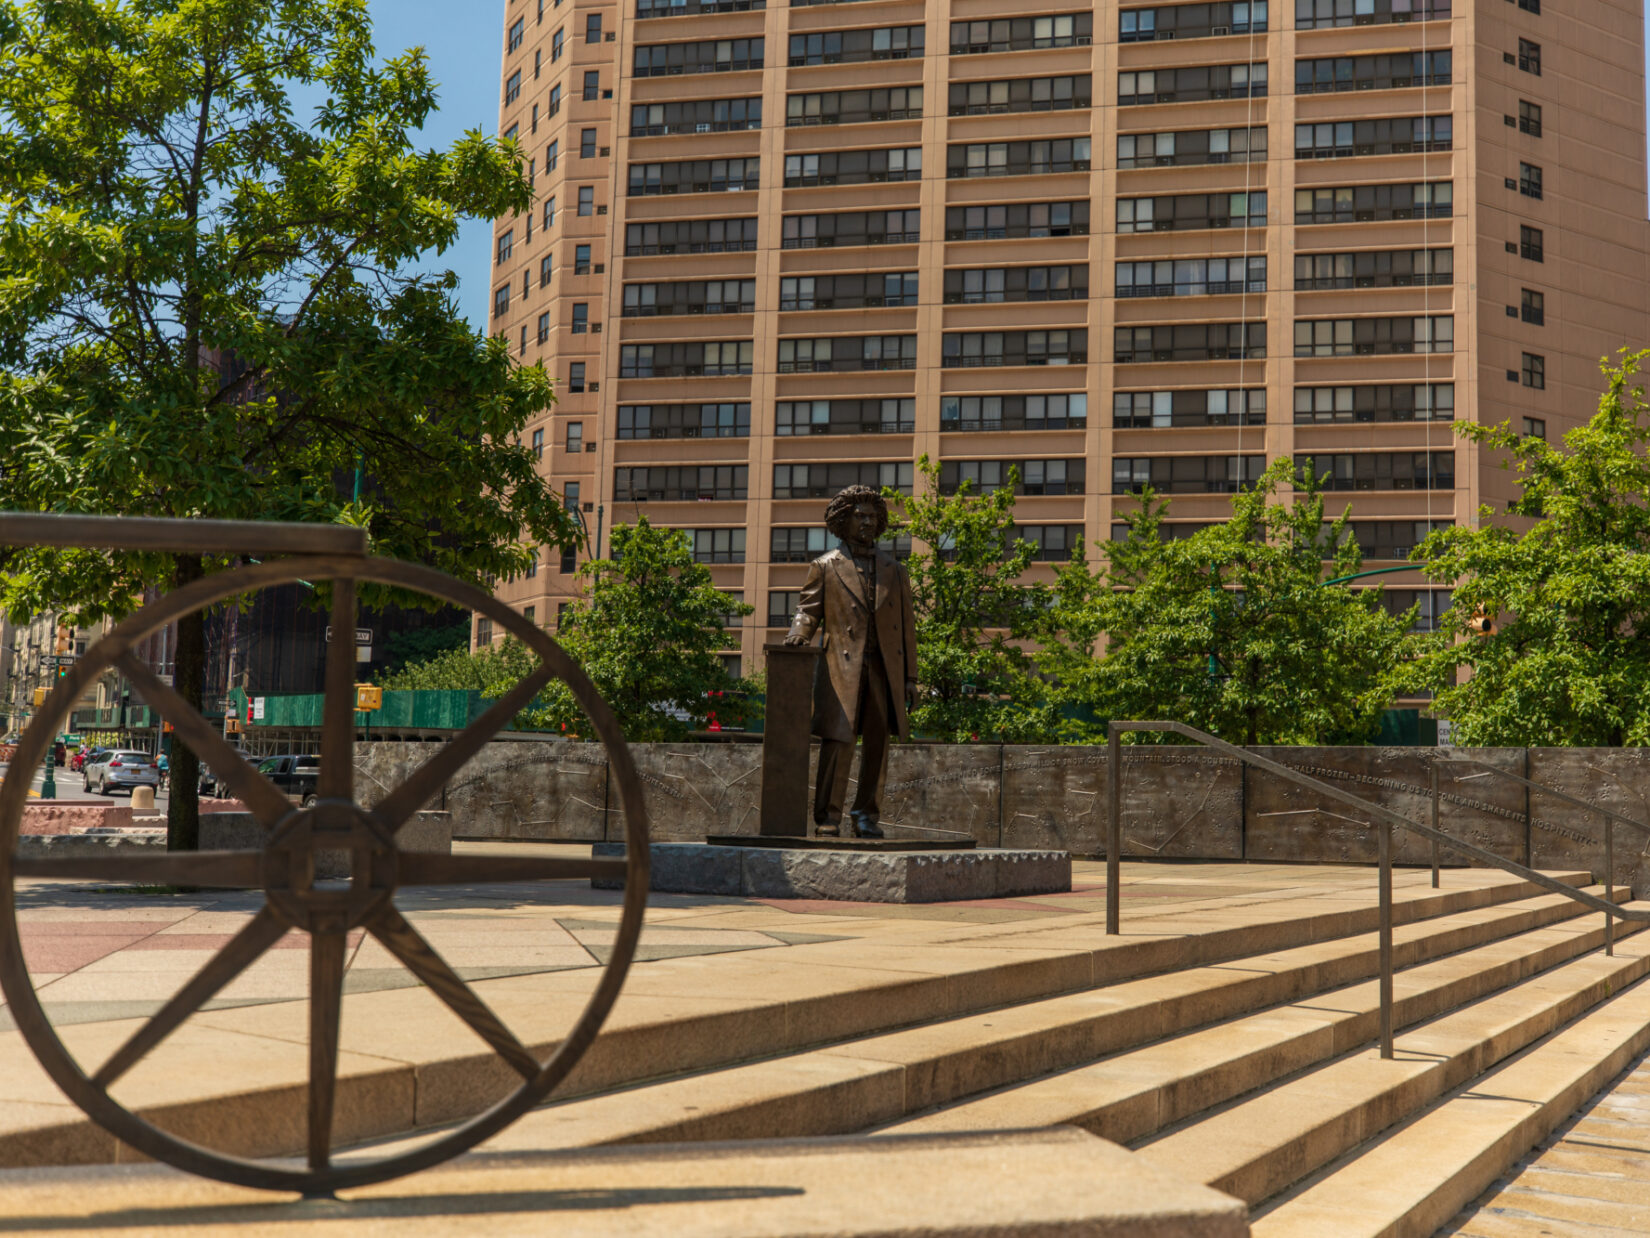 A view of Frederick Douglass Circle, with the statue of Douglass at the center